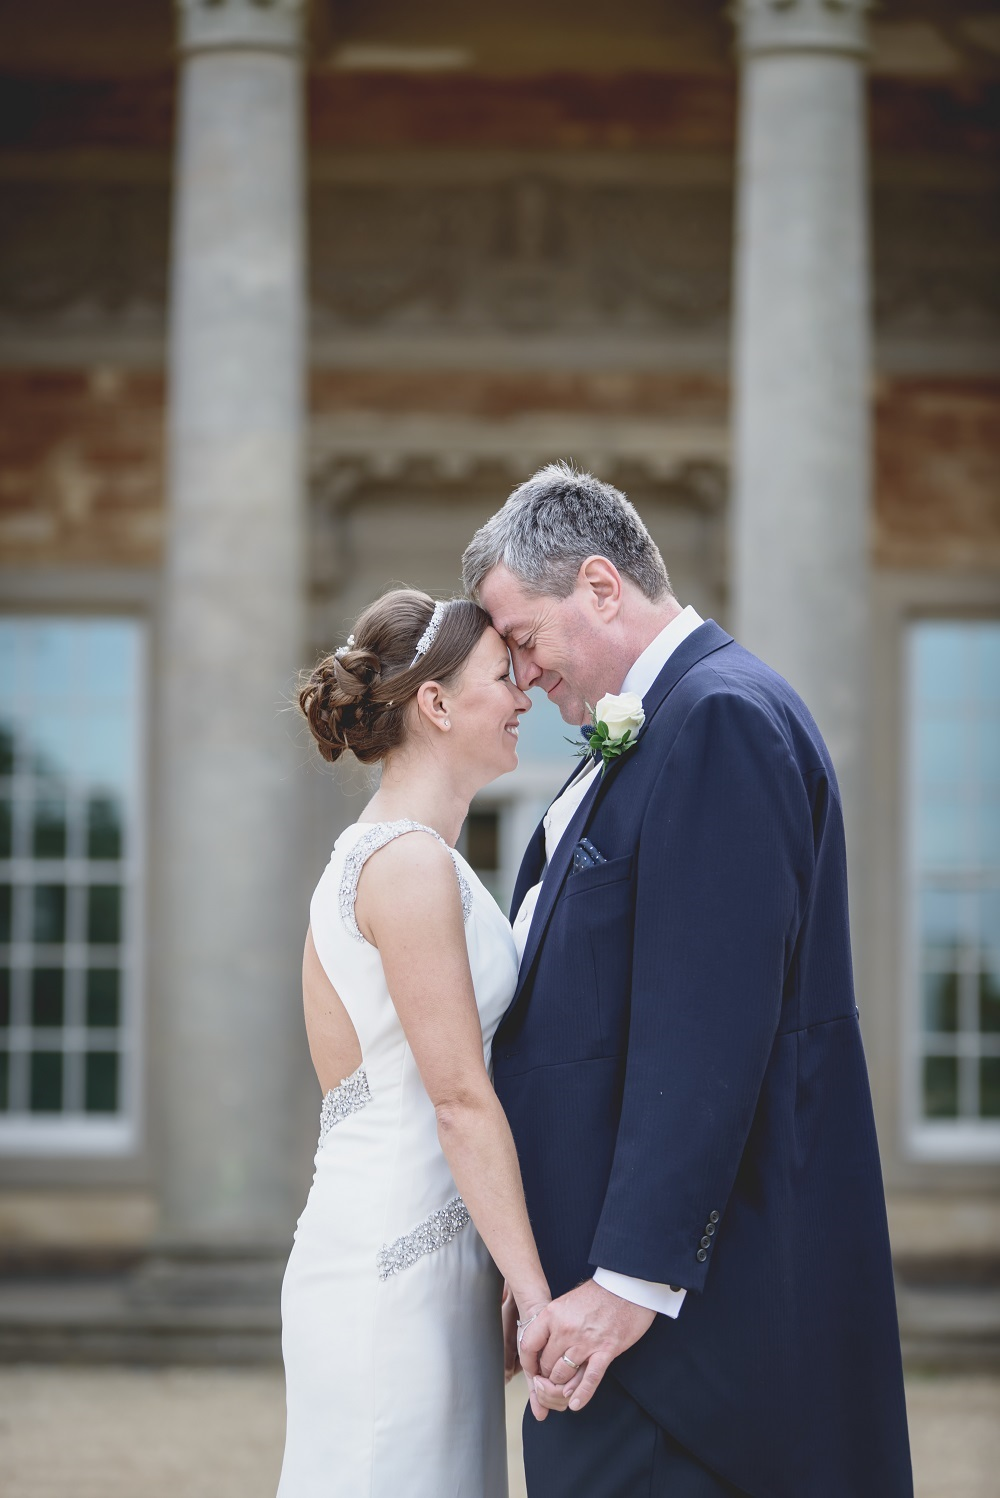 Compton Verney Wedding Photography by Chris Fossey Photography Claire Banner 2